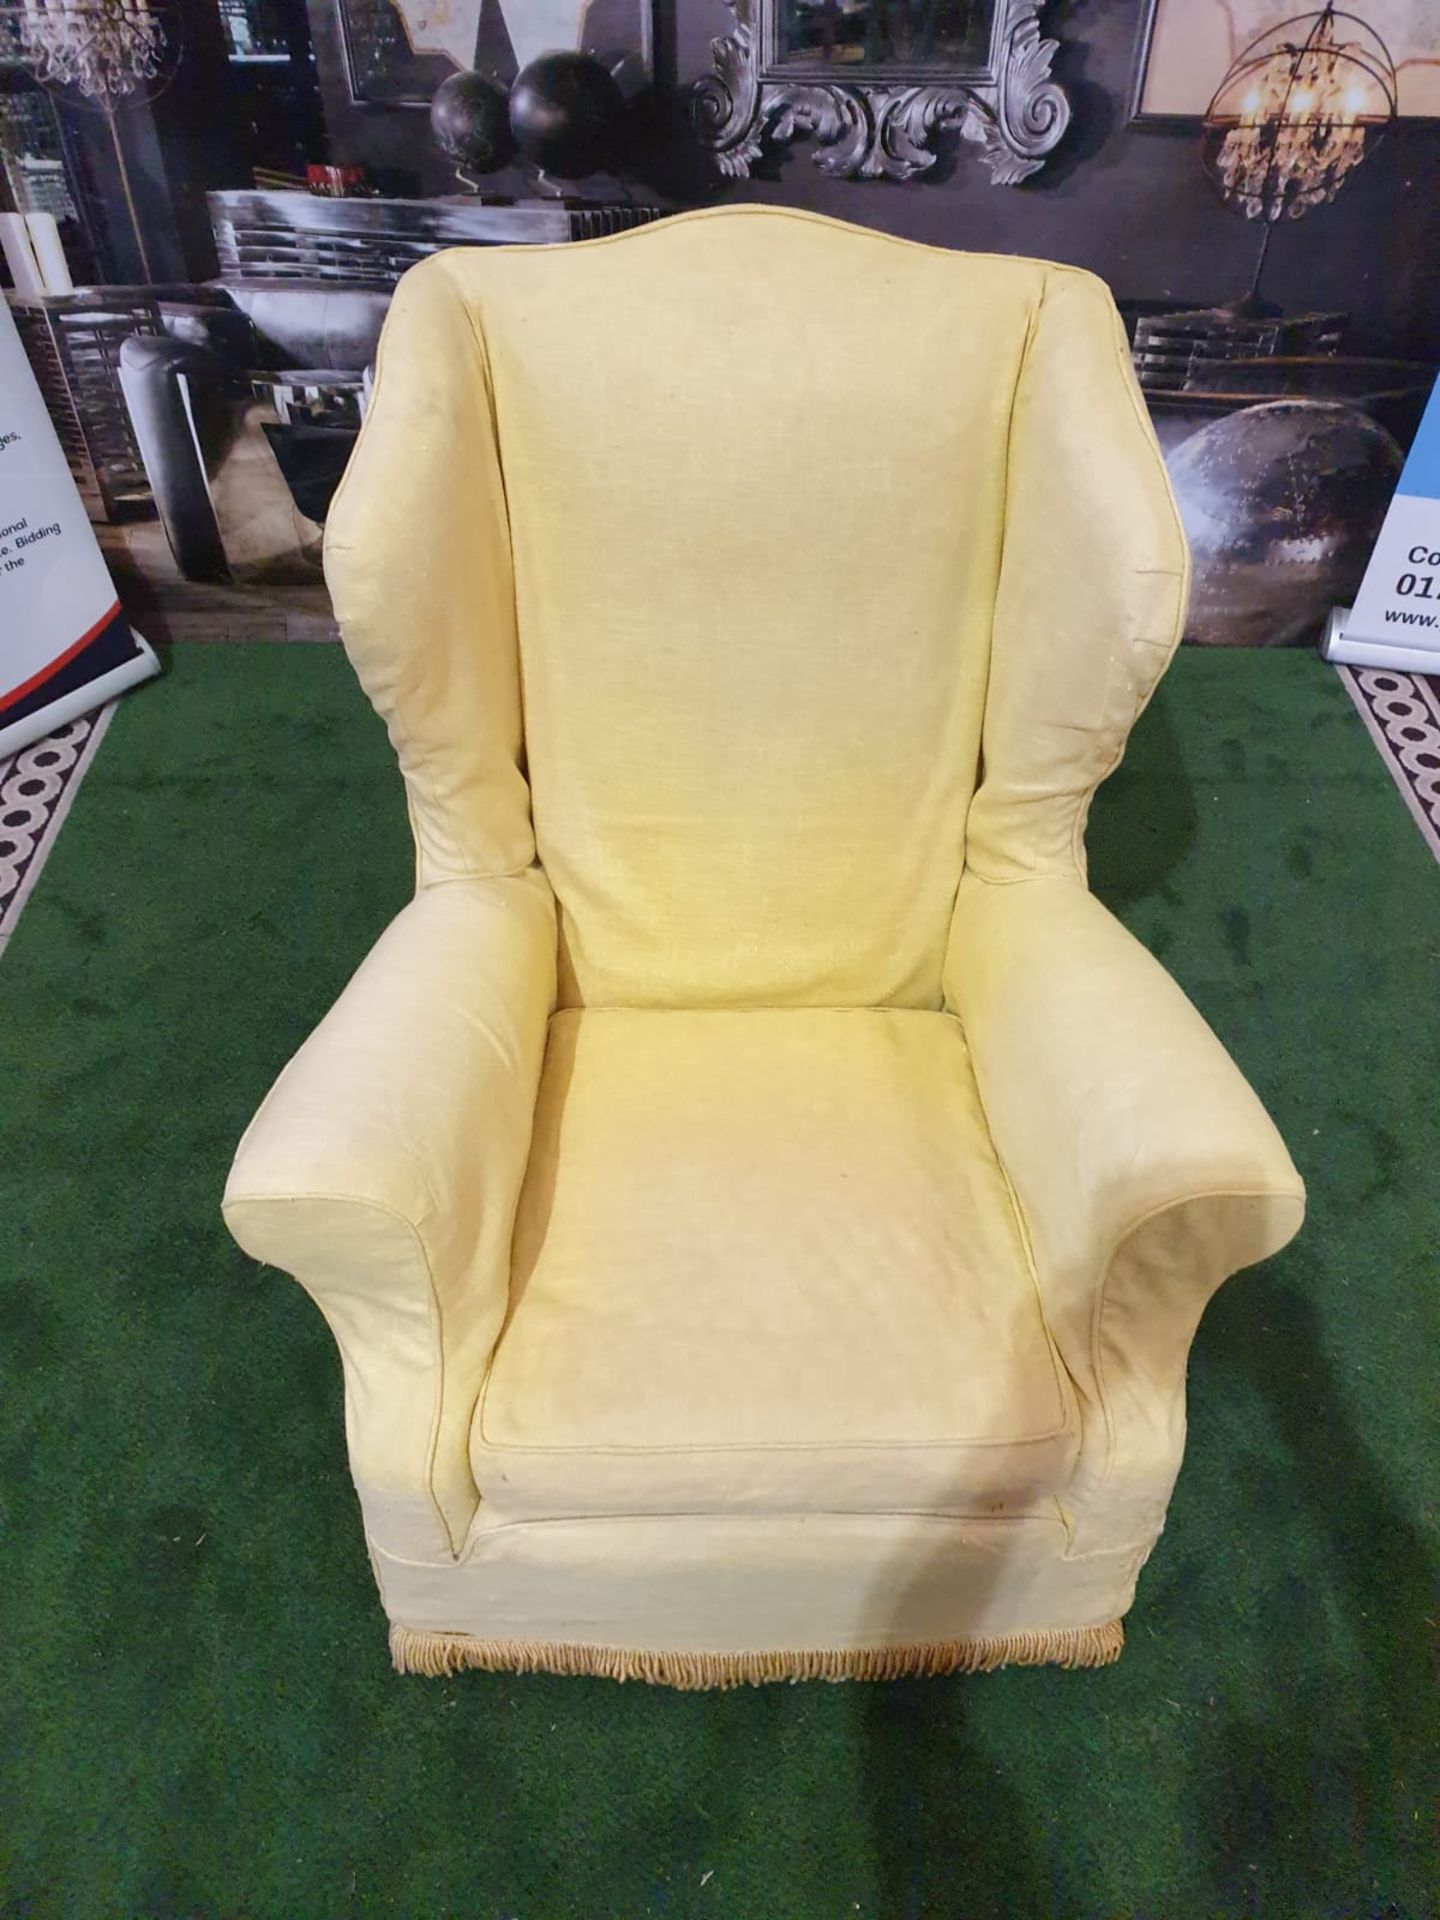 A 1940s style upholstered wing back armchair An elegant and unusual wing chair with curvaceous